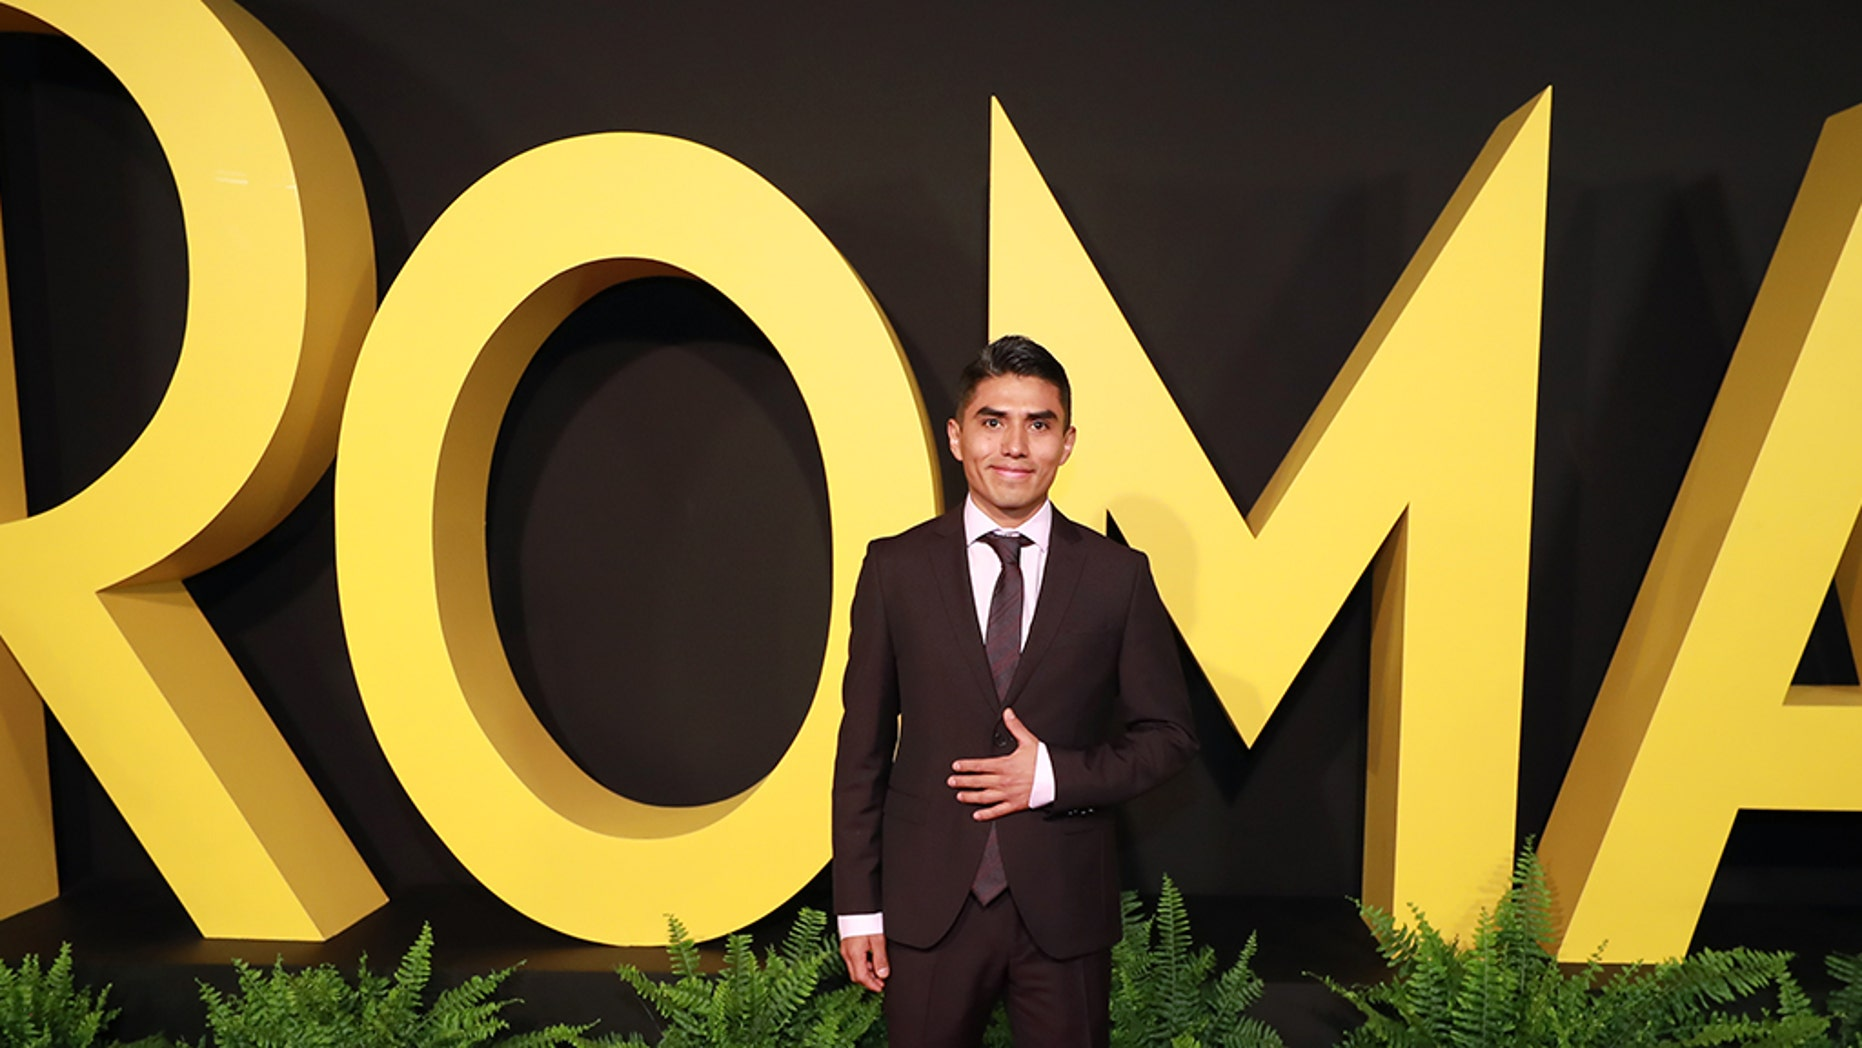 'Roma' actor Jorge Antonio Guerrero Martínez, who is from Mexico, may have to miss the Academy Awards, because his visa requests keep getting denied